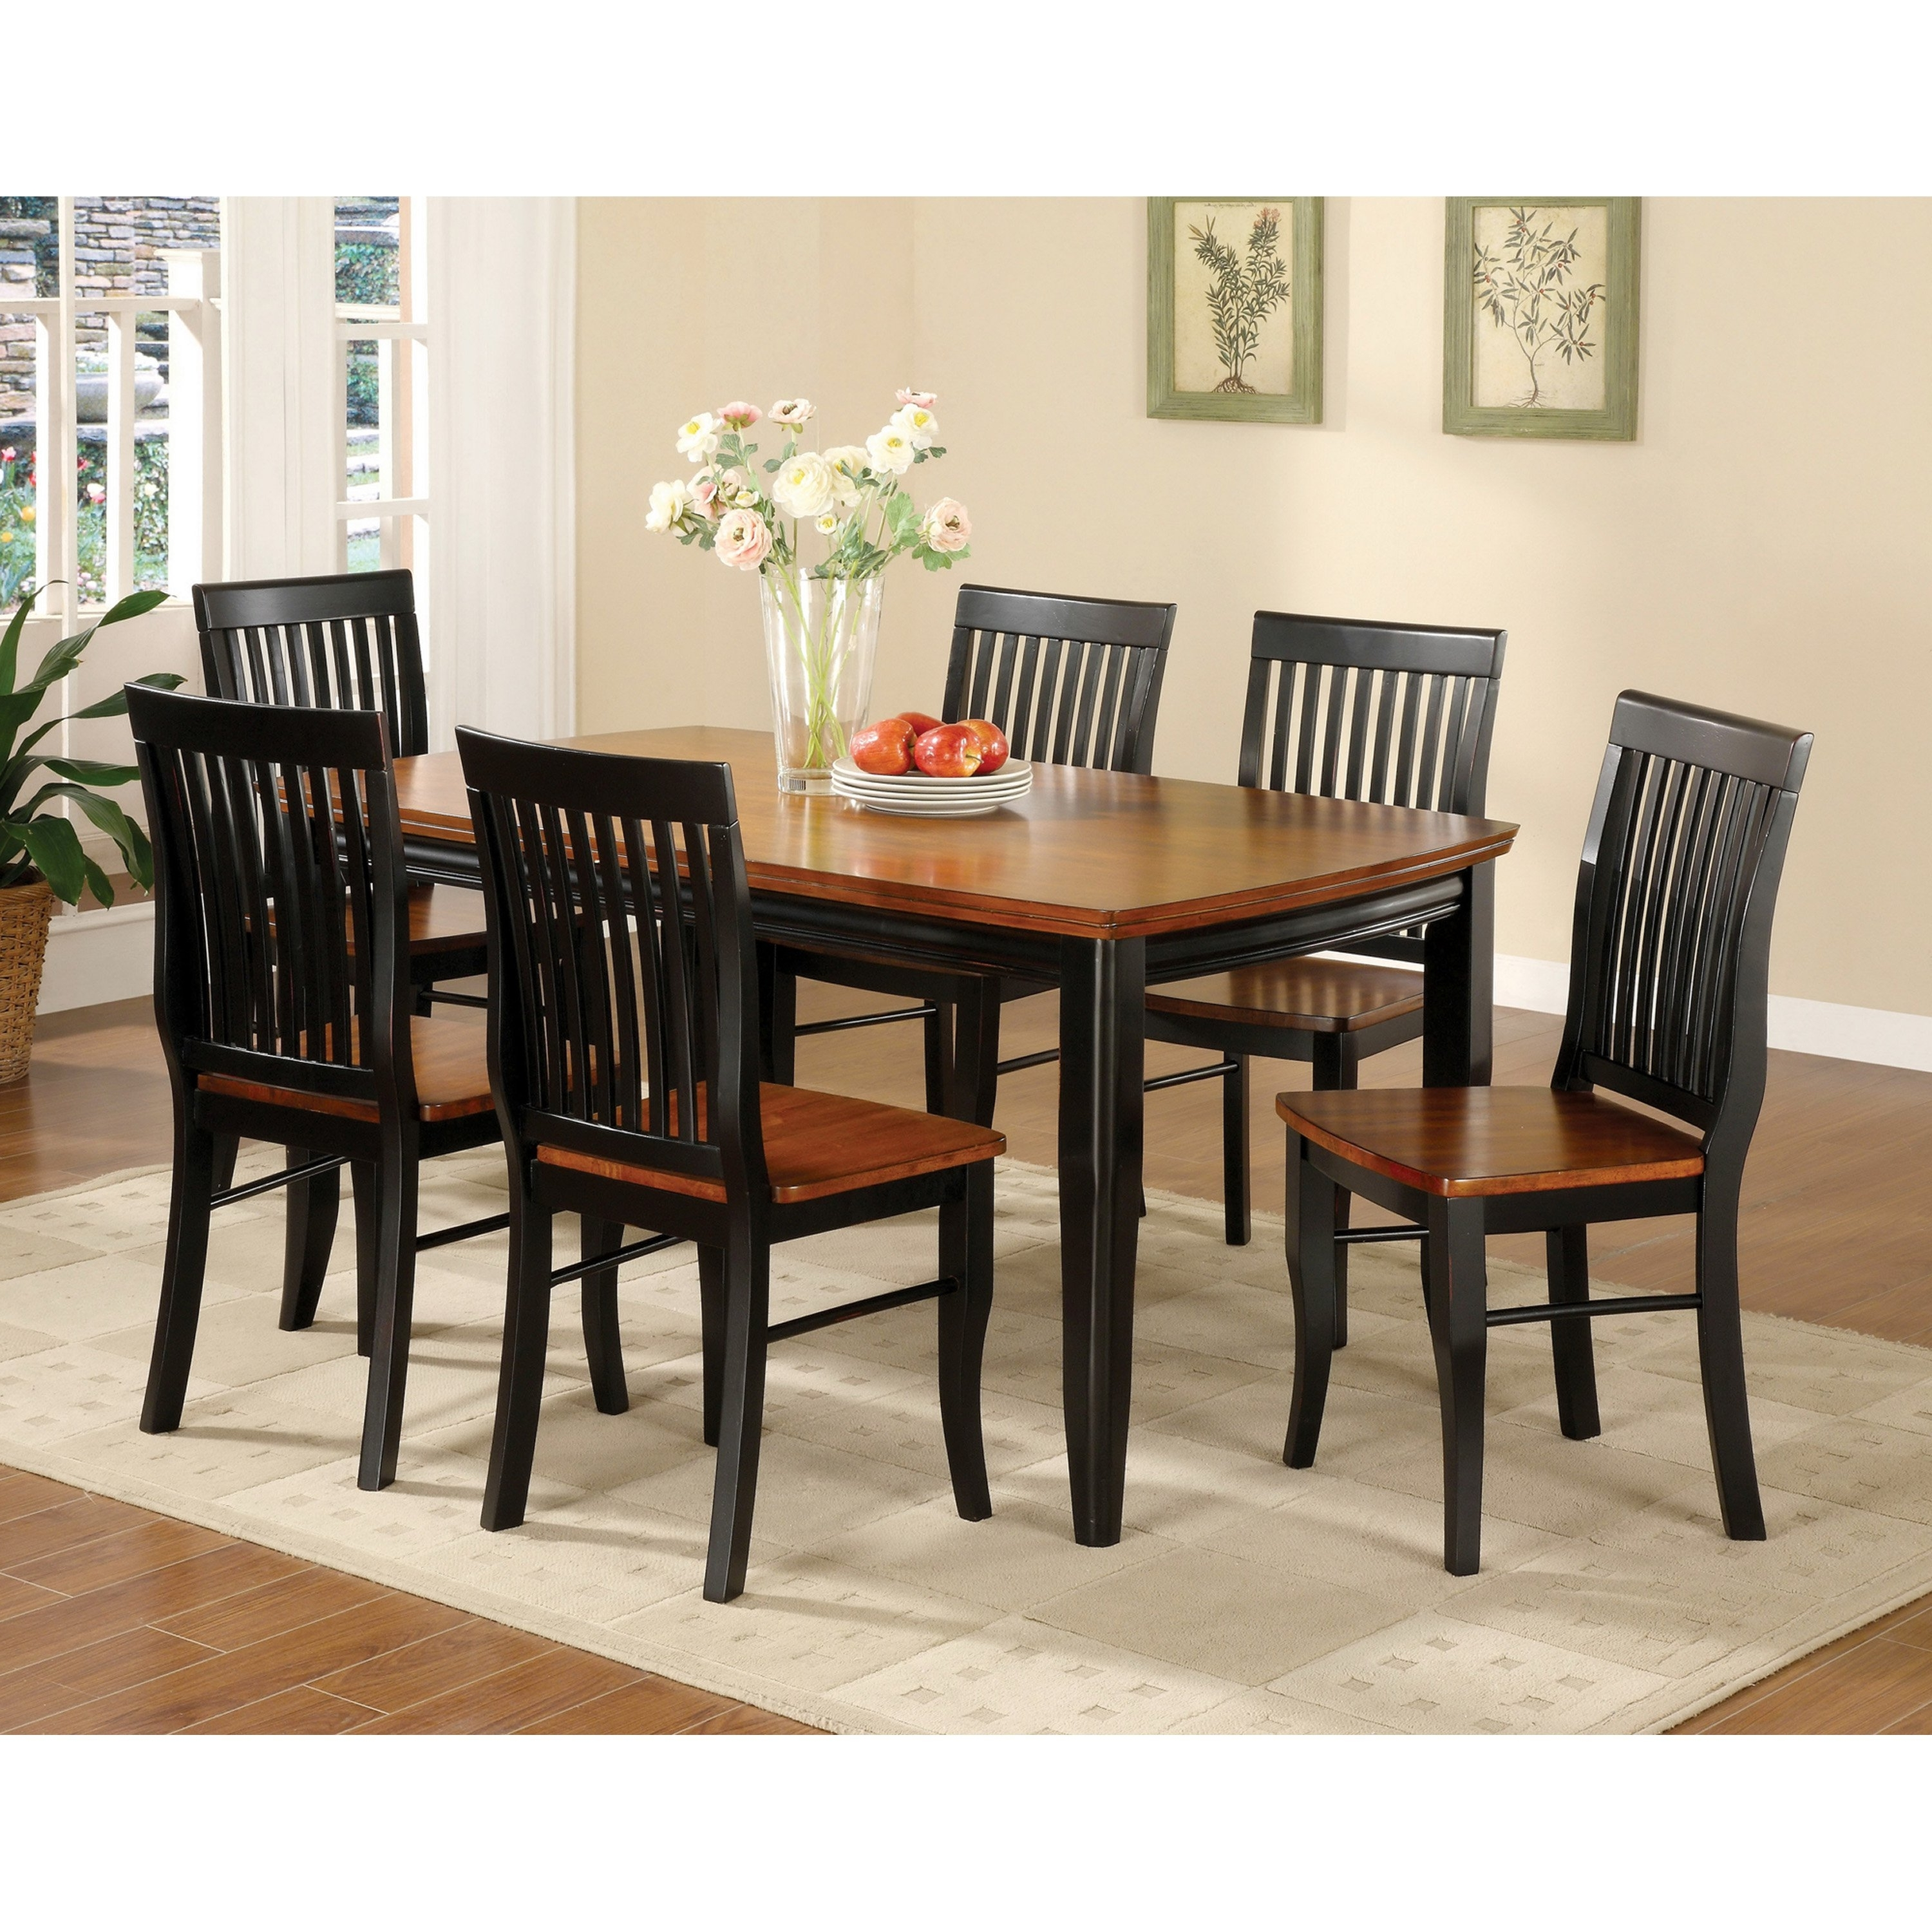 Nora Dining Tables For Most Popular Shop Furniture Of America Nora Two Tone Solid Wood Slat Back Dining (View 14 of 25)